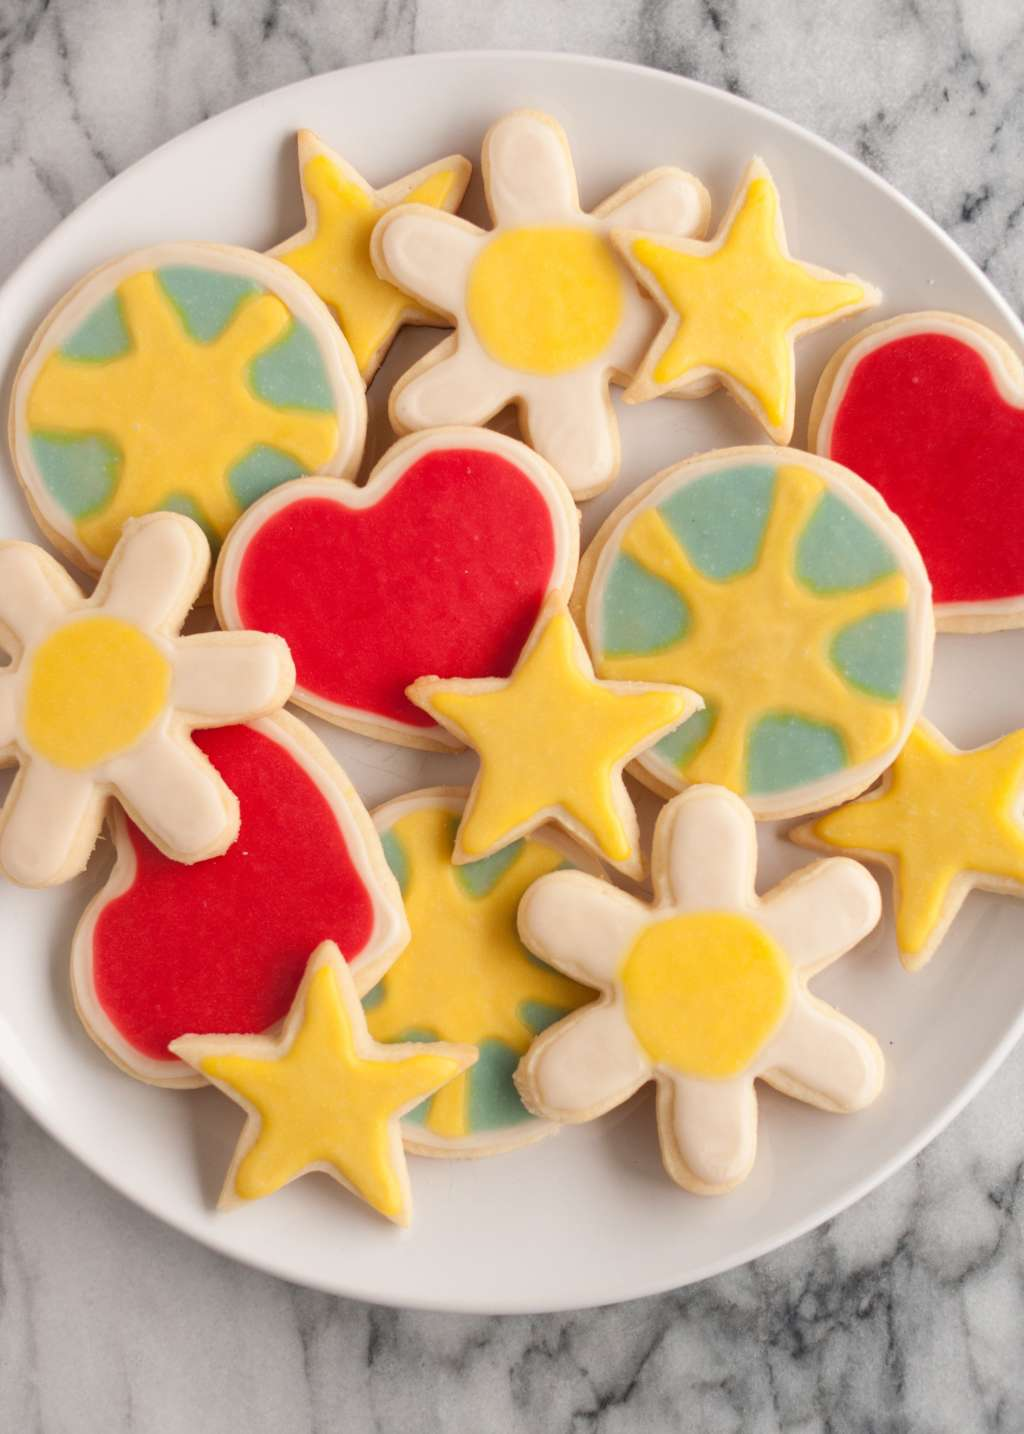 How To Make Cut-Out Sugar Cookies